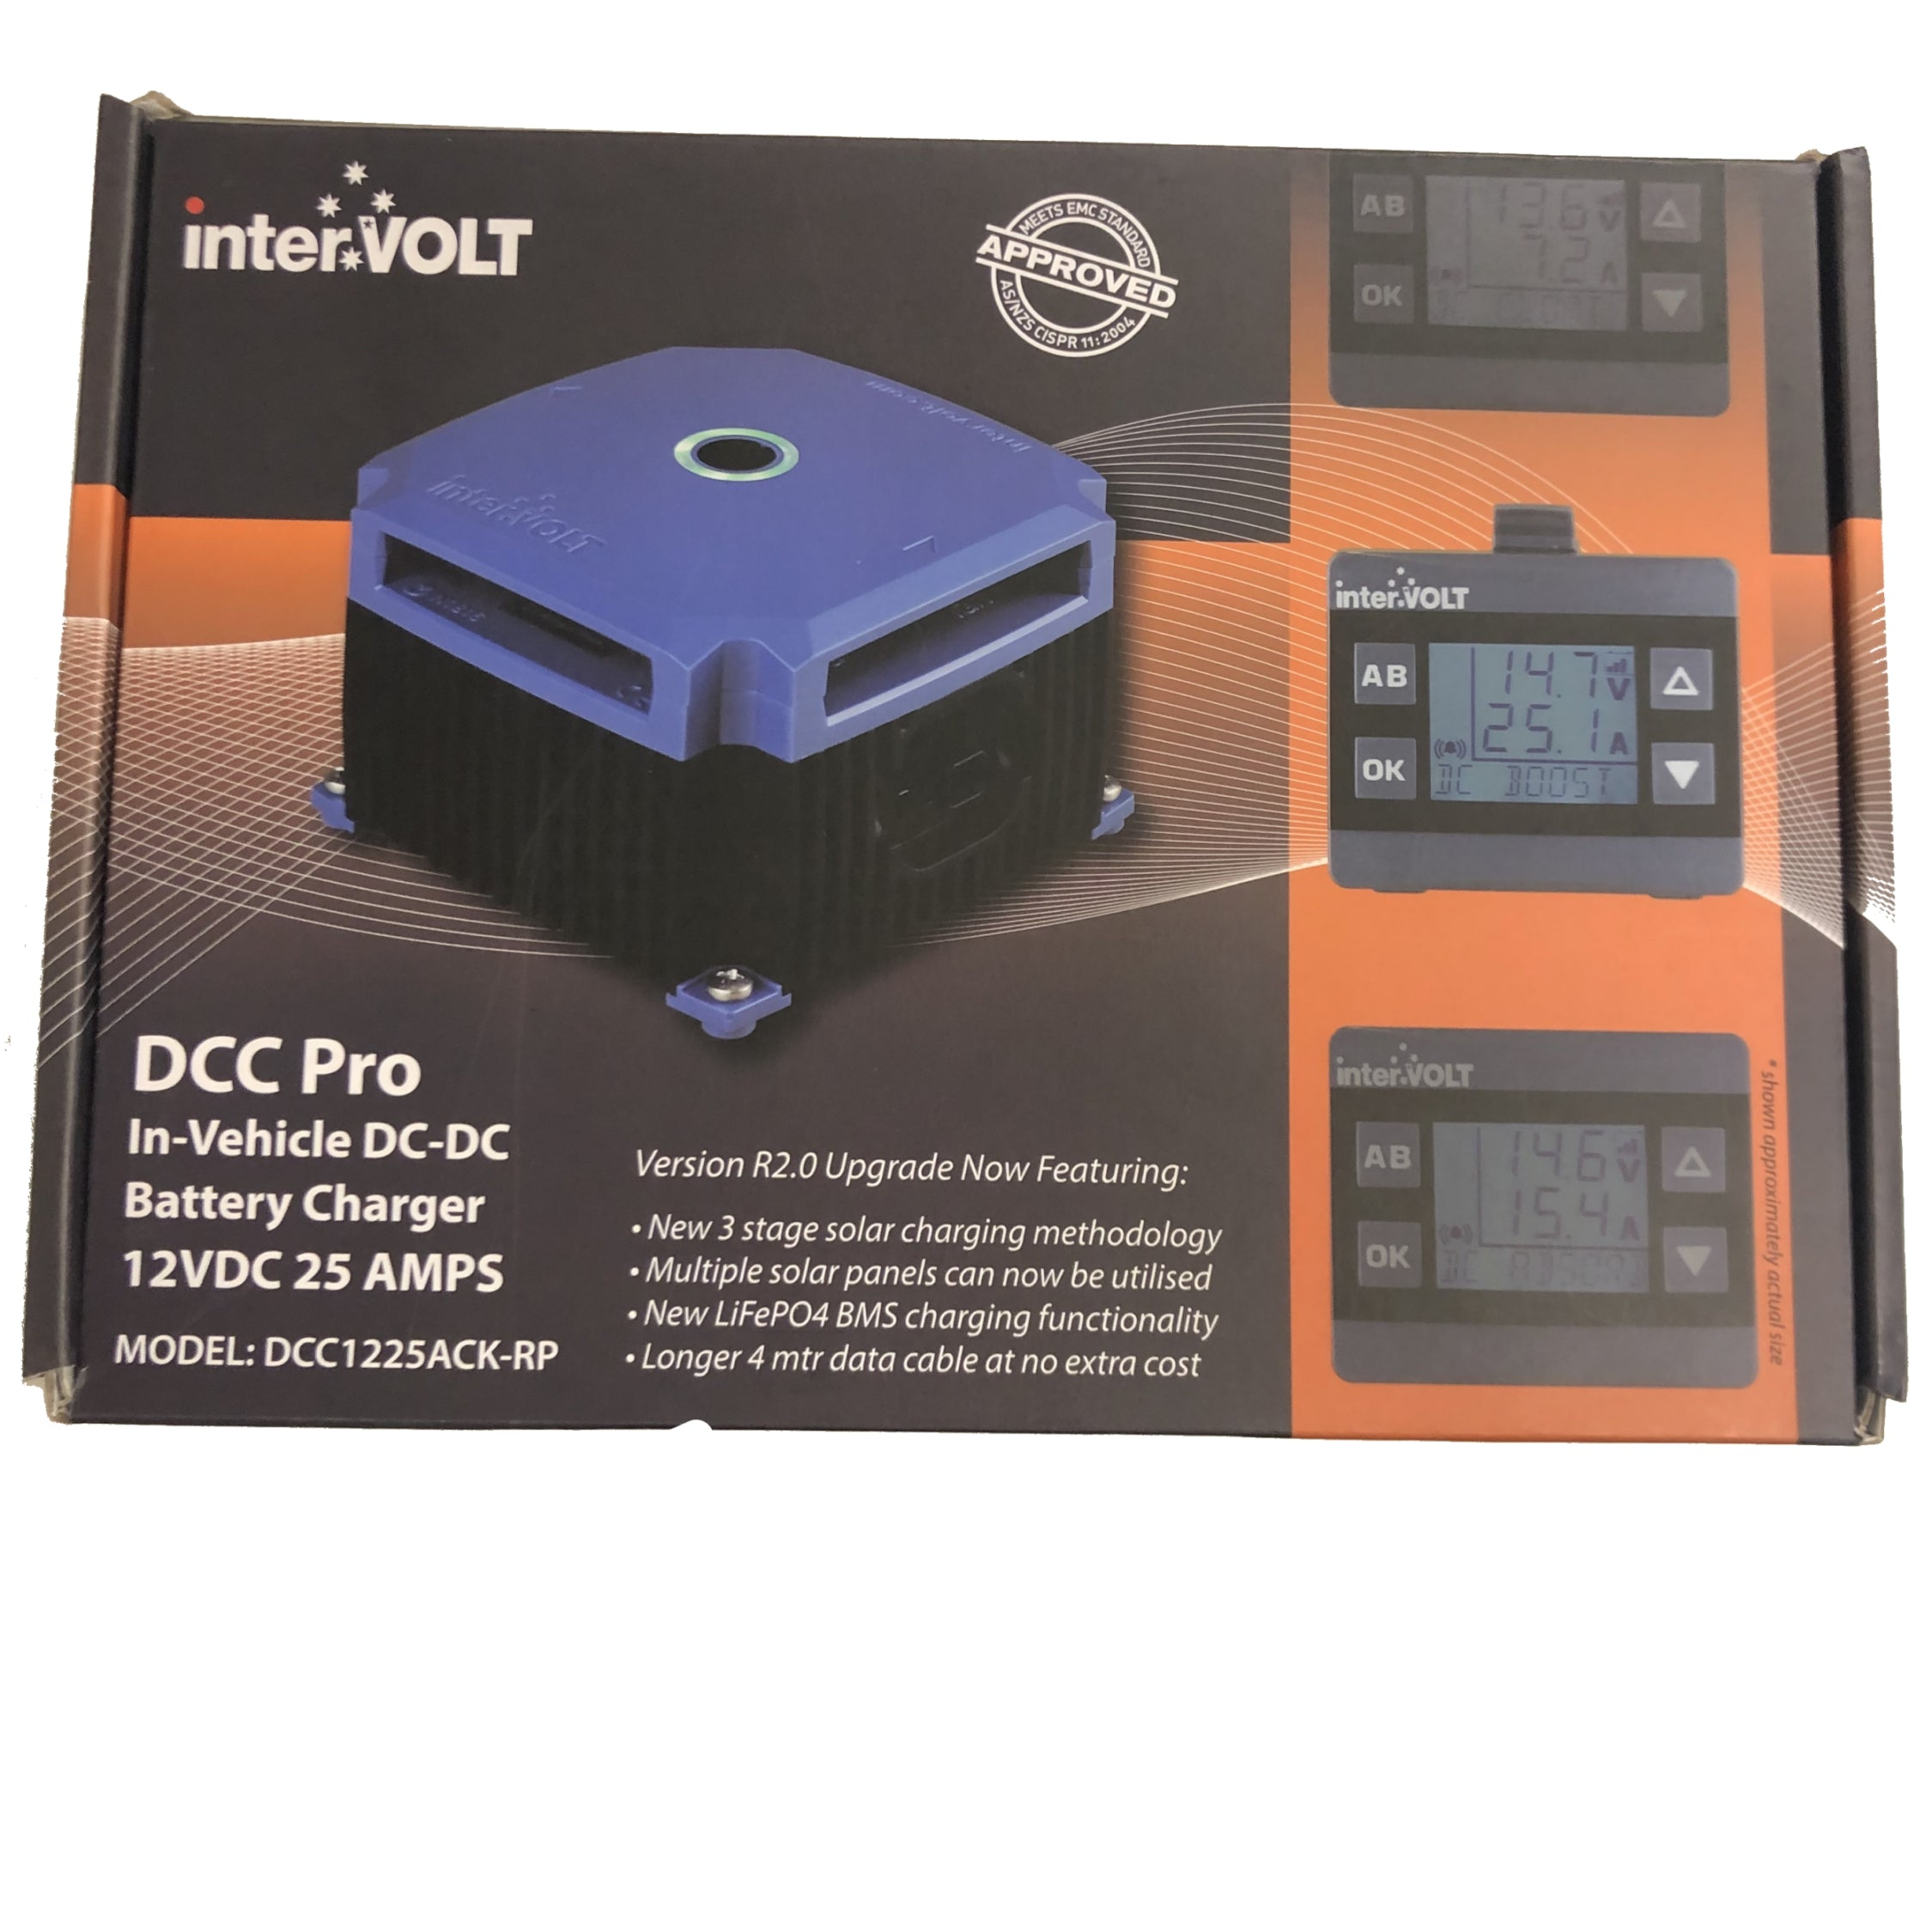 DCC1225ACK-RP Intervolt DCC Pro In-Vehicle DC DC Battery Charger with remote display | DC Charger | Perth Pro Auto Electric parts